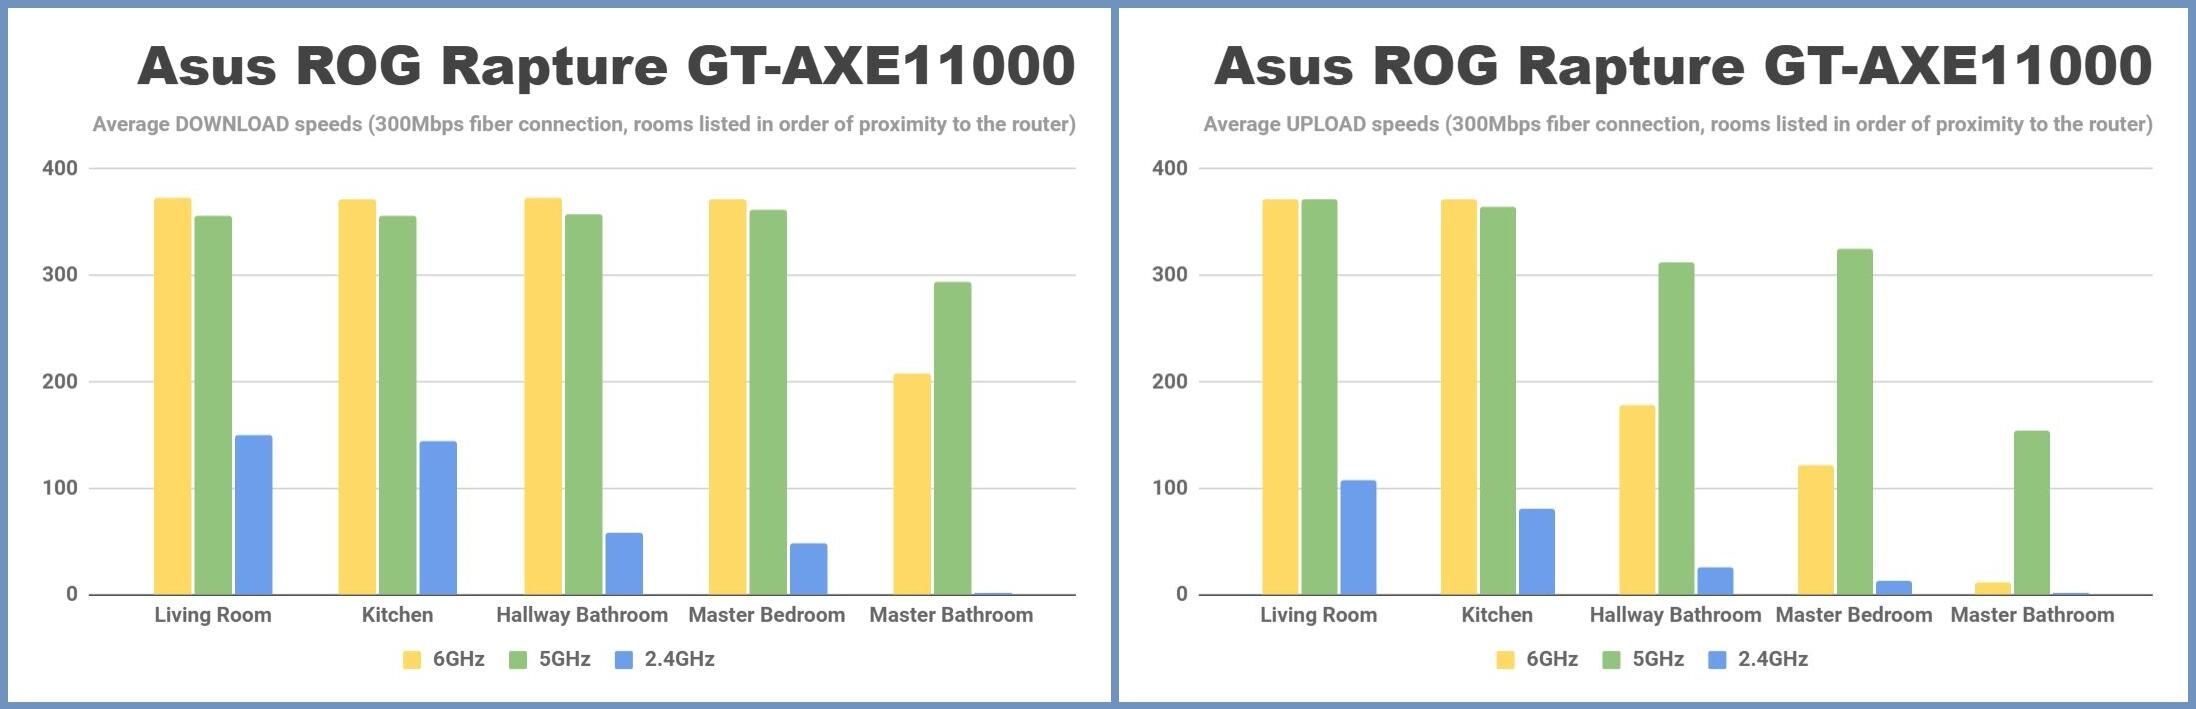 asus-rog-rapture-gt-axe11000-wi-fi-6e-router-average-download-and-upload-speeds